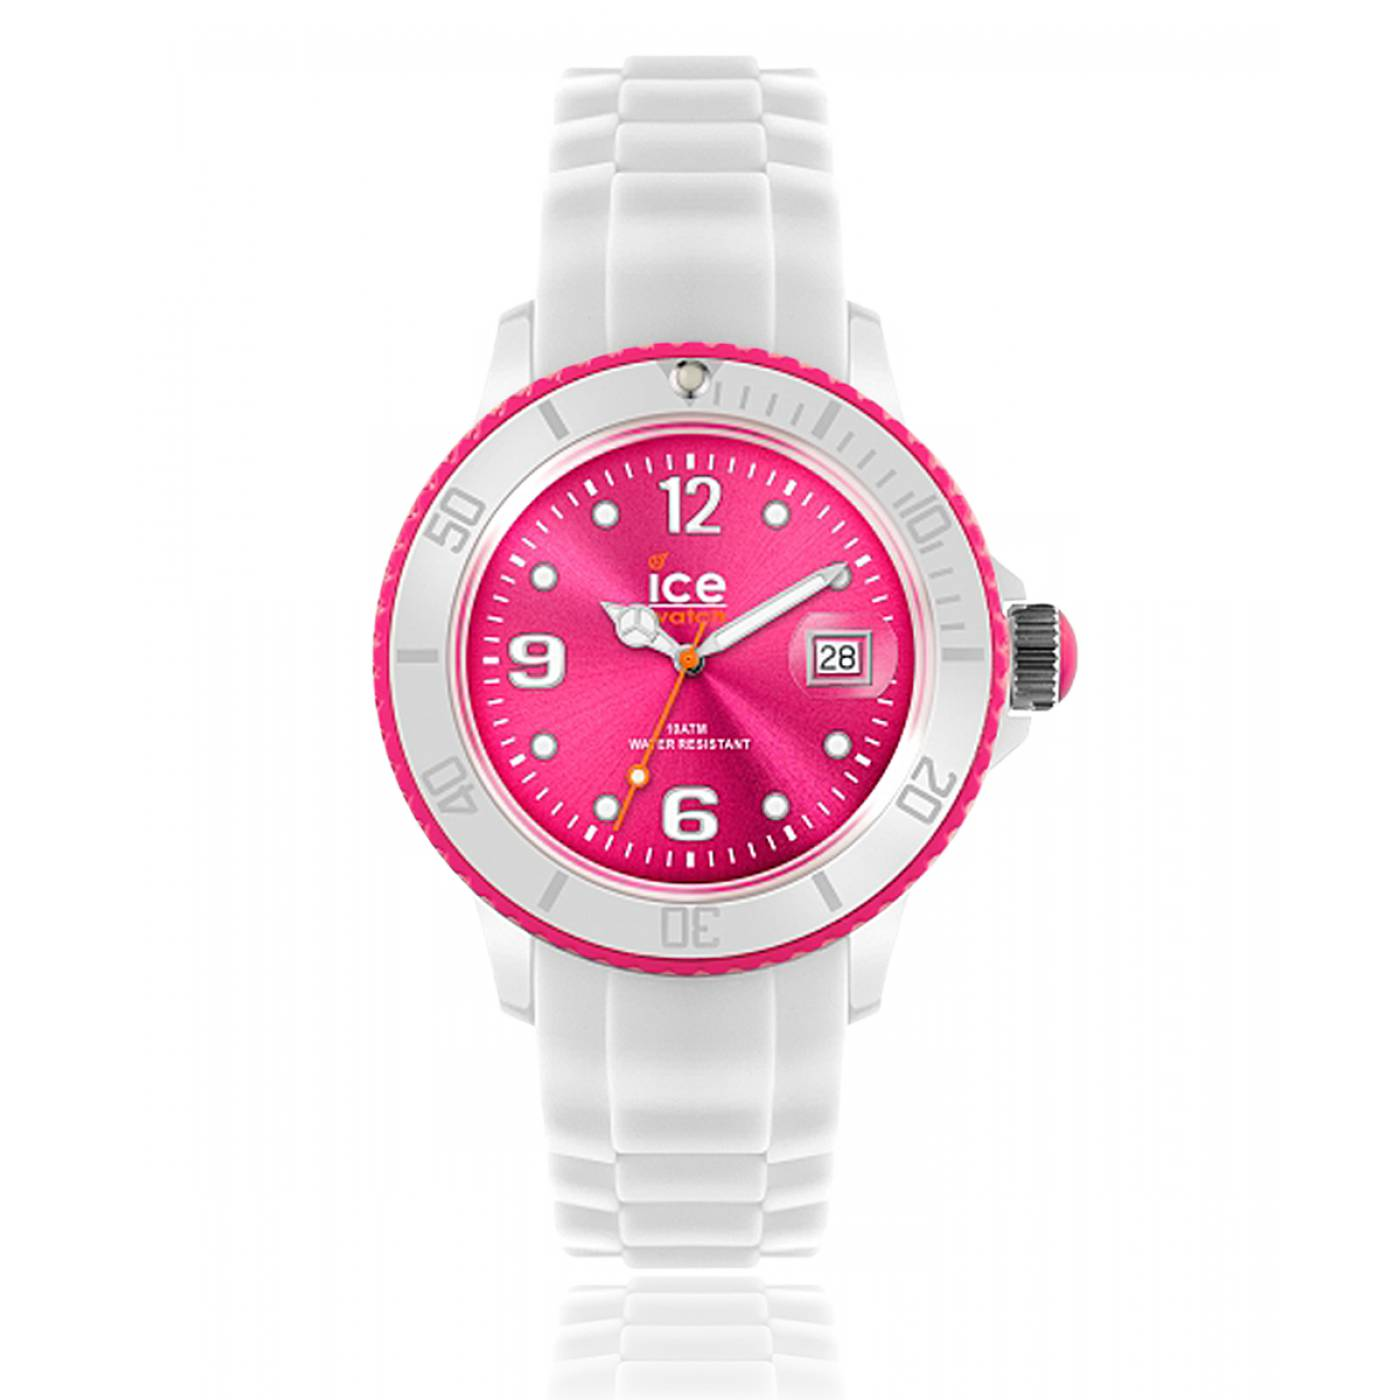 montre femme ice white silicone rose blanc ice watch. Black Bedroom Furniture Sets. Home Design Ideas